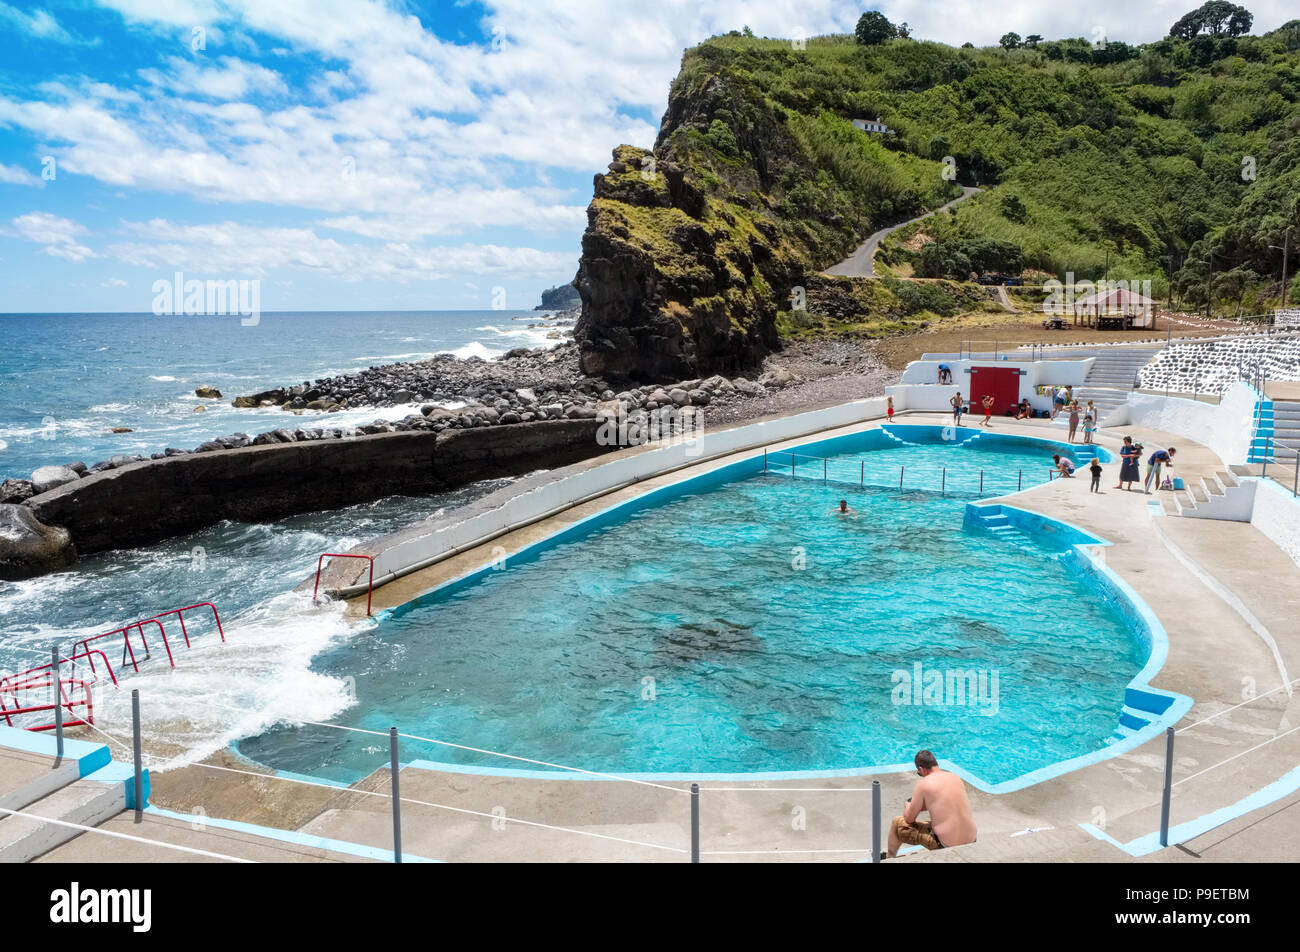 Swimming pool at Ponta Ribeira on the northeast coast of Sao Miguel, The Azores - Stock Image